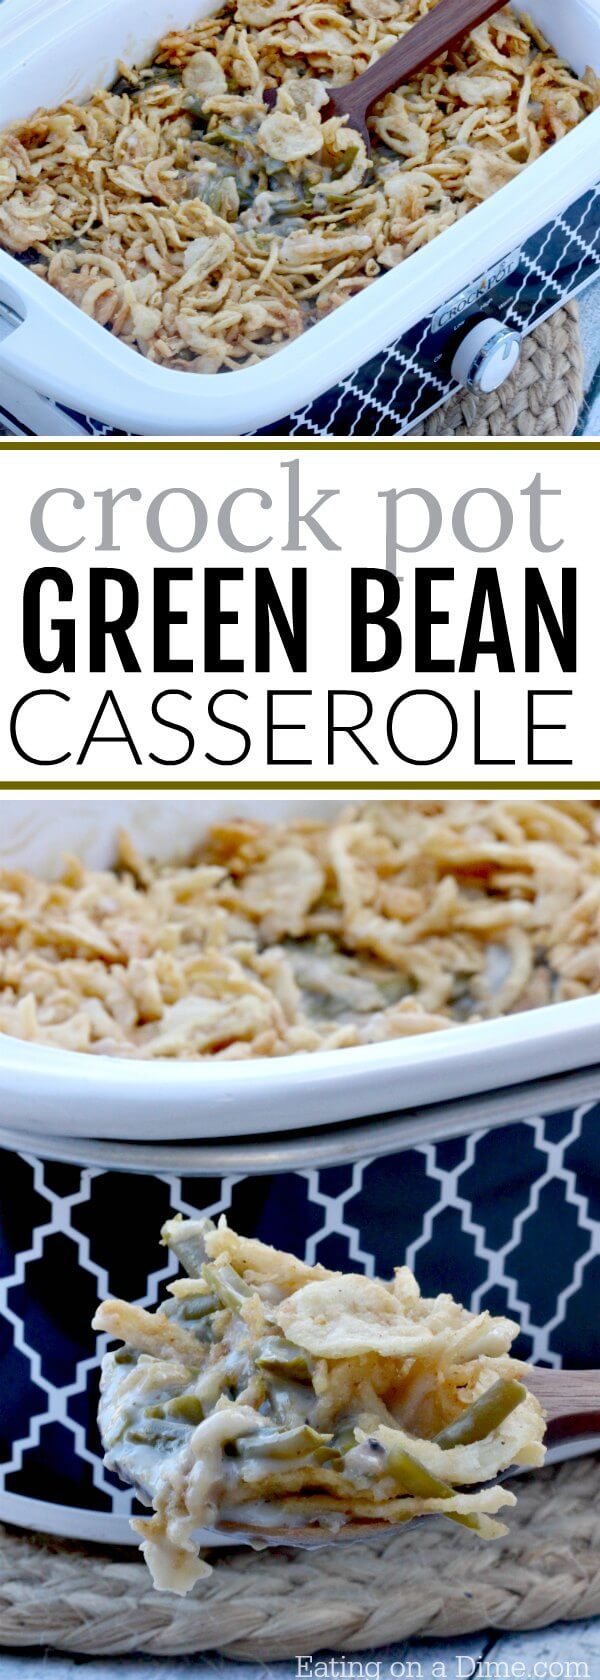 Enjoy this fun twist on the classic Green Bean Casserole Recipe! Free up the oven this Holiday with the Crock pot Green Bean Casserole Recipe!